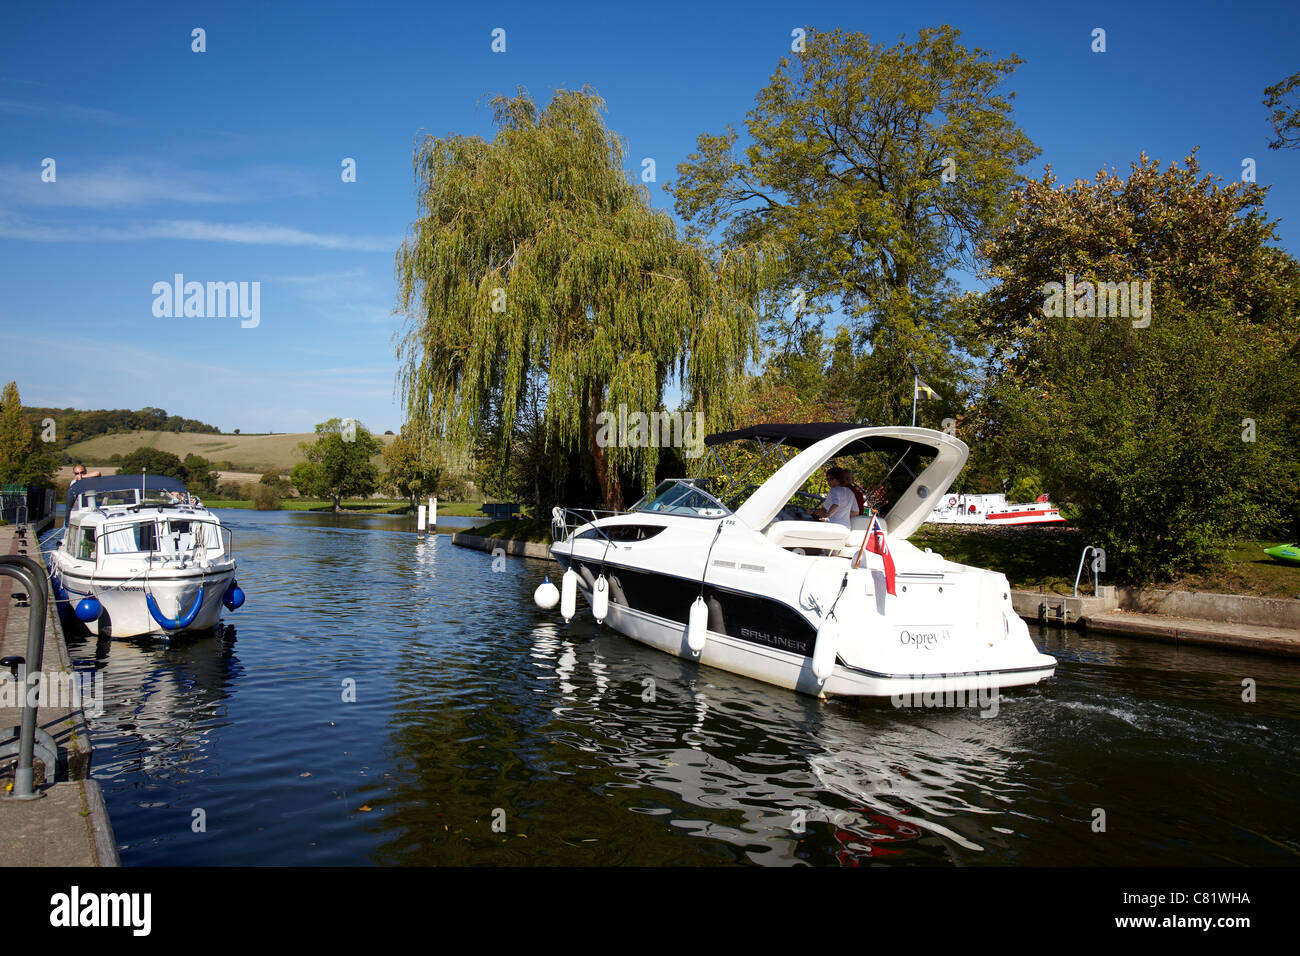 Boats on the River Thames at Mapledurham Lock near Reading, Berkshire. Stock Photo